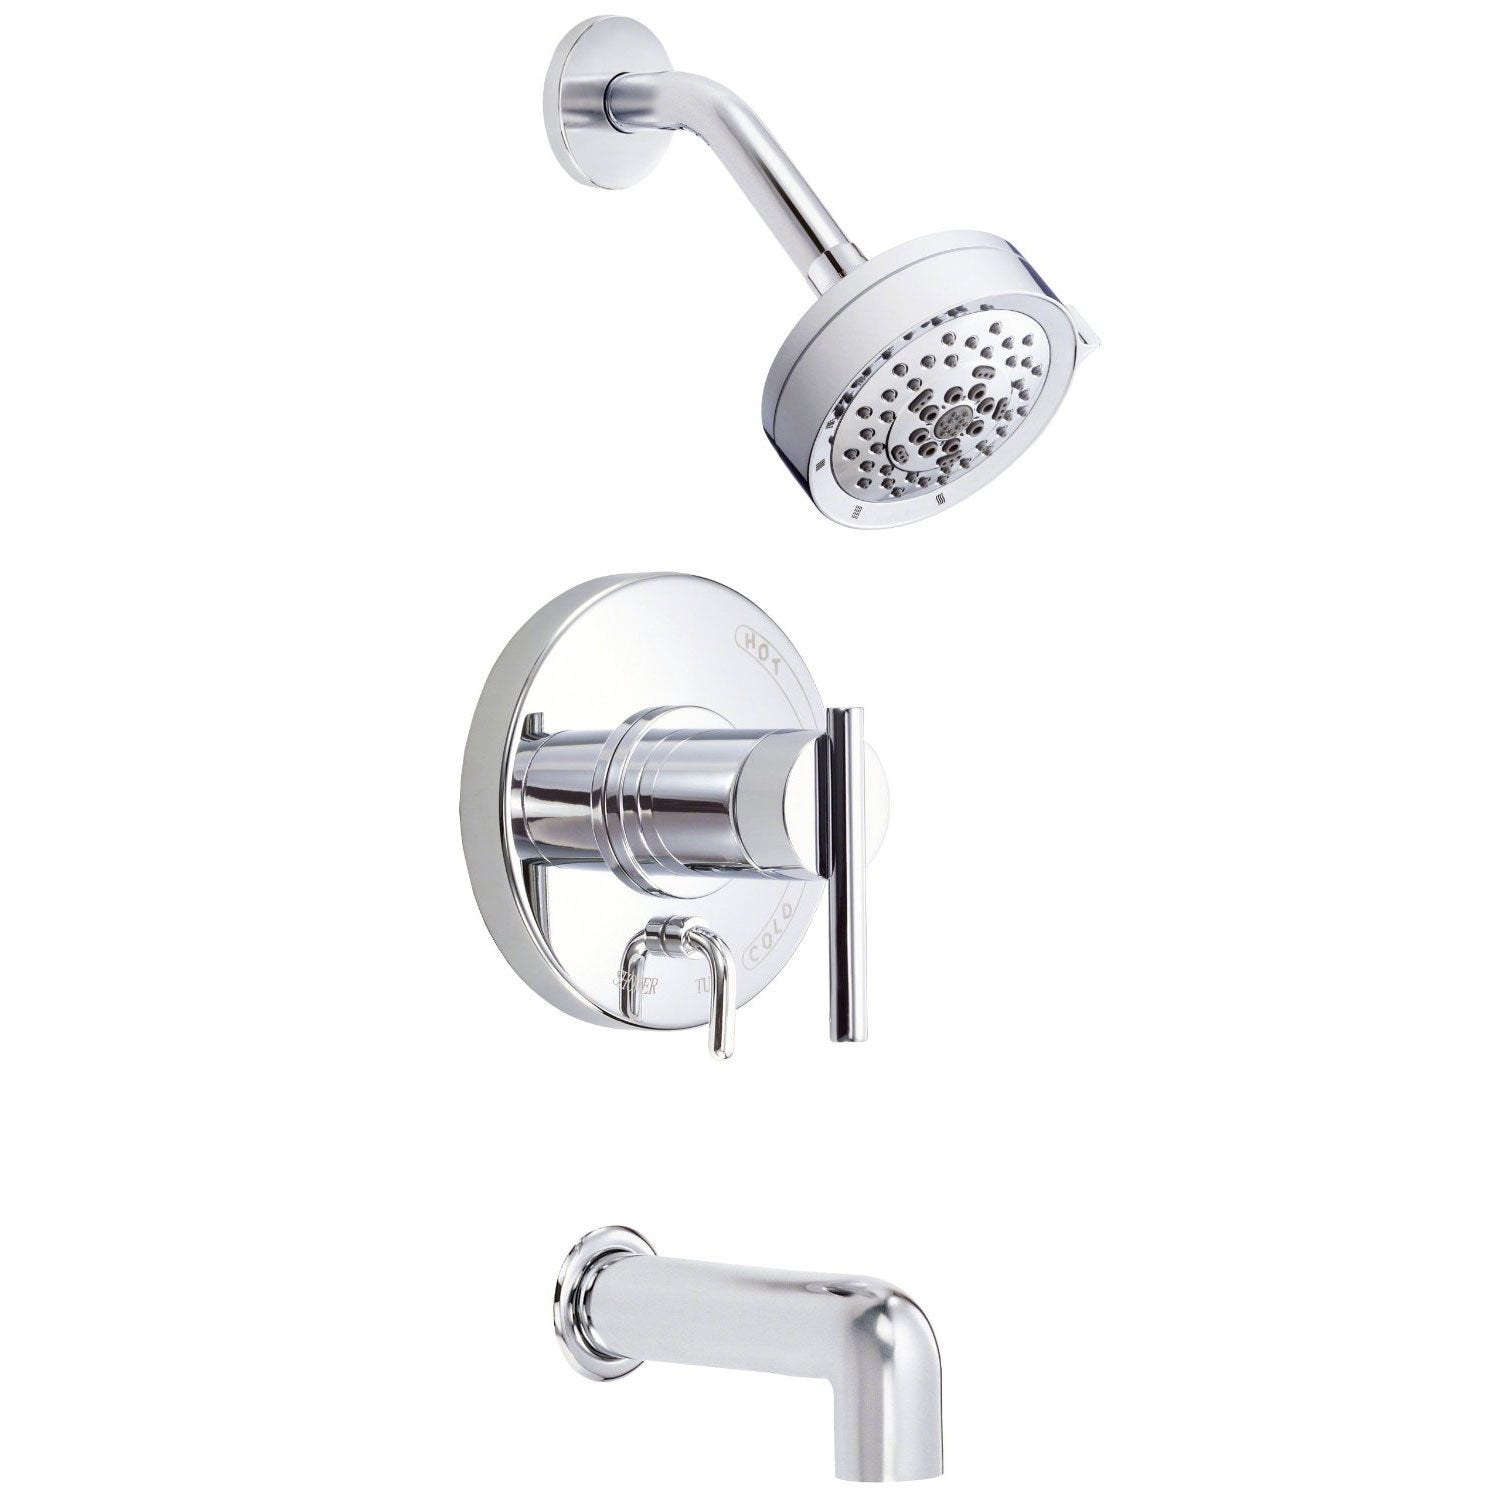 Danze Parma Modern Chrome Single Handle Tub and Shower Combination Faucet INCLUDES Rough-in Valve